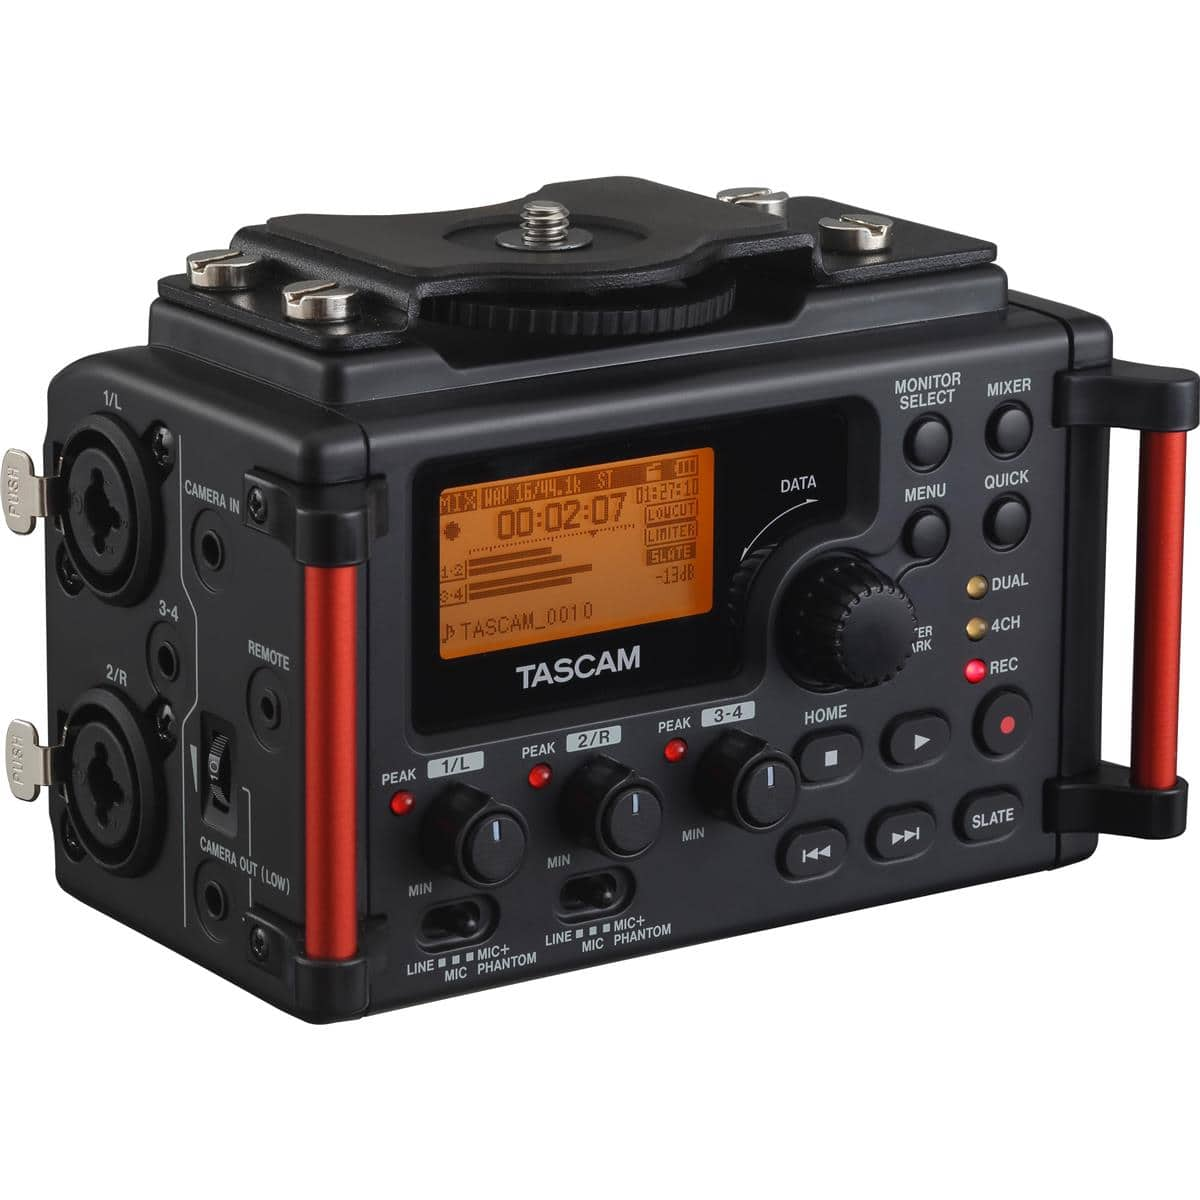 Tascam DR-60D MKII Portable Audio Recorder for DSLR Cameras $125 after $30 Rebate + Free shipping